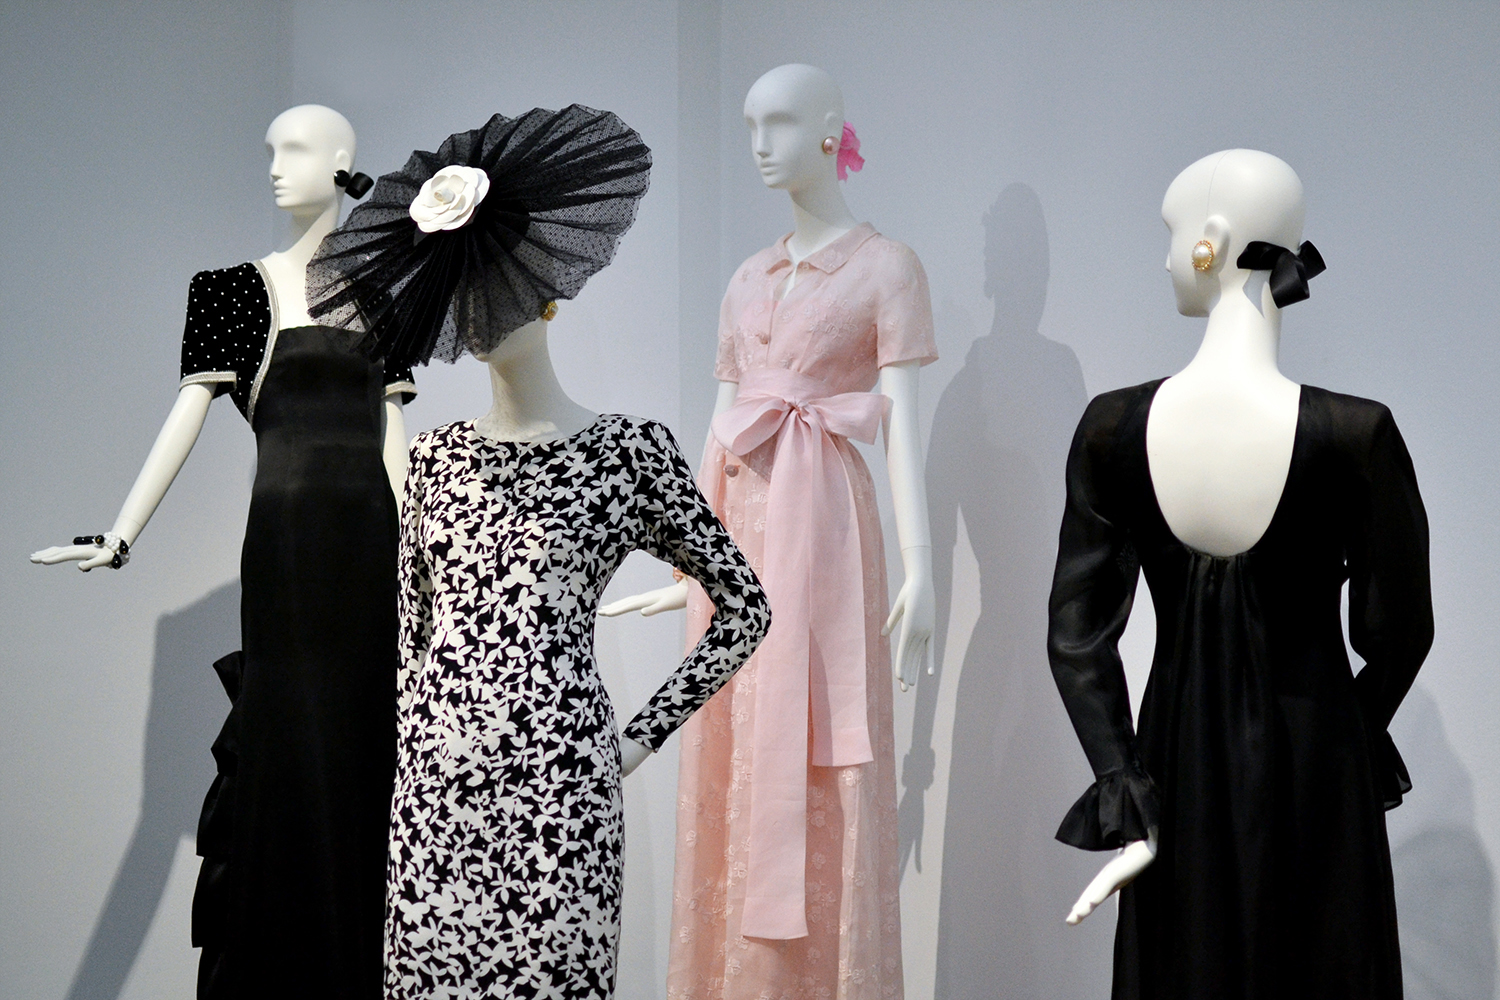 Retromantisch Gemeentemuseum Den Haag Hubert de Givenchy To Audrey with love 2